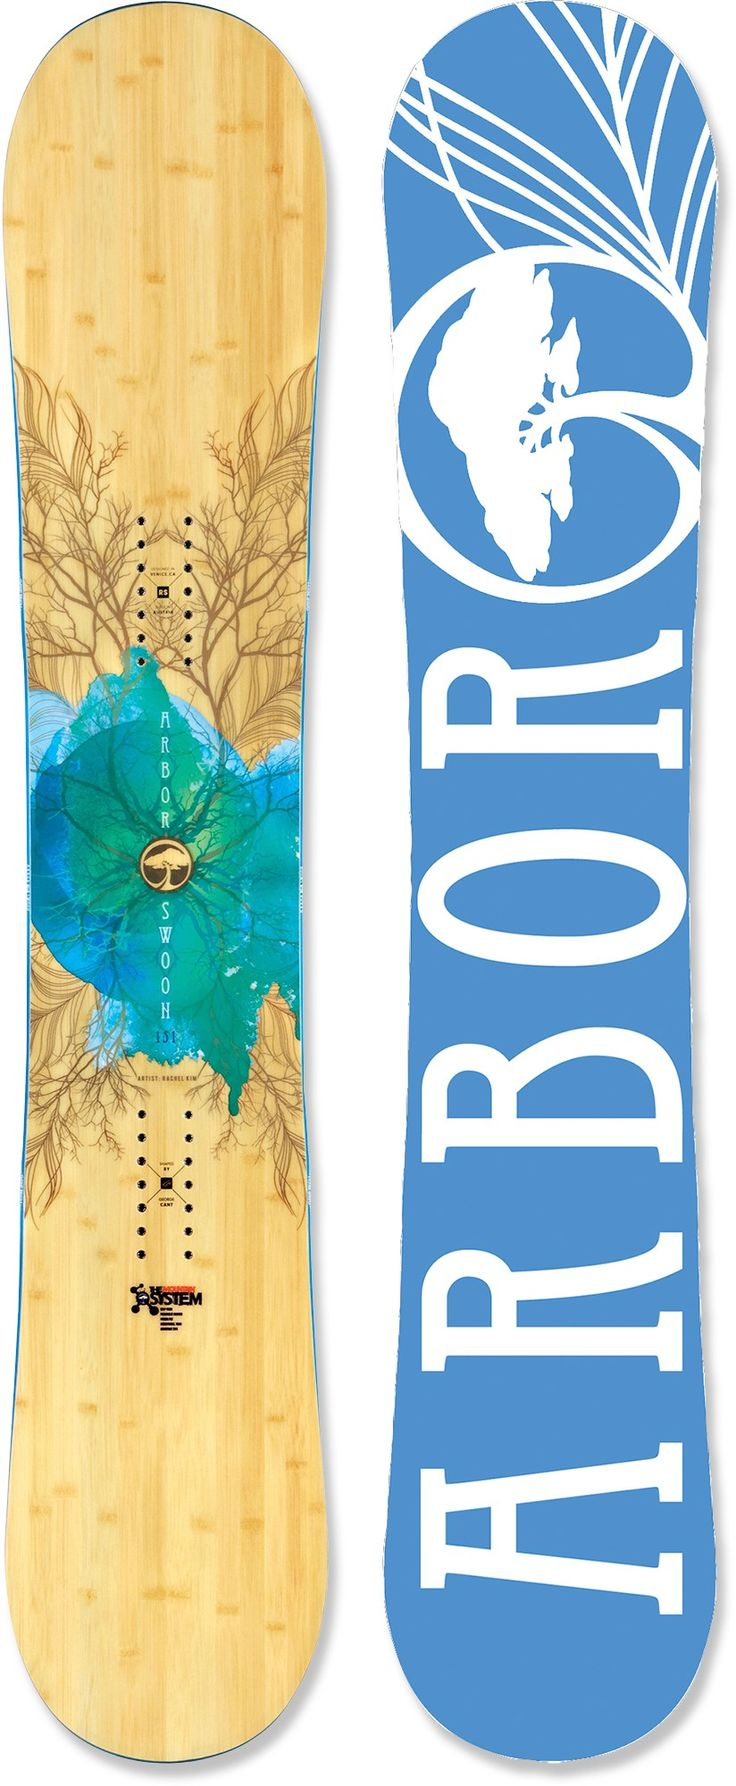 Arbor Swoon Snowboard - Women's - 2012/2013 at REI.com - if they had this in purple I would kill to have it!